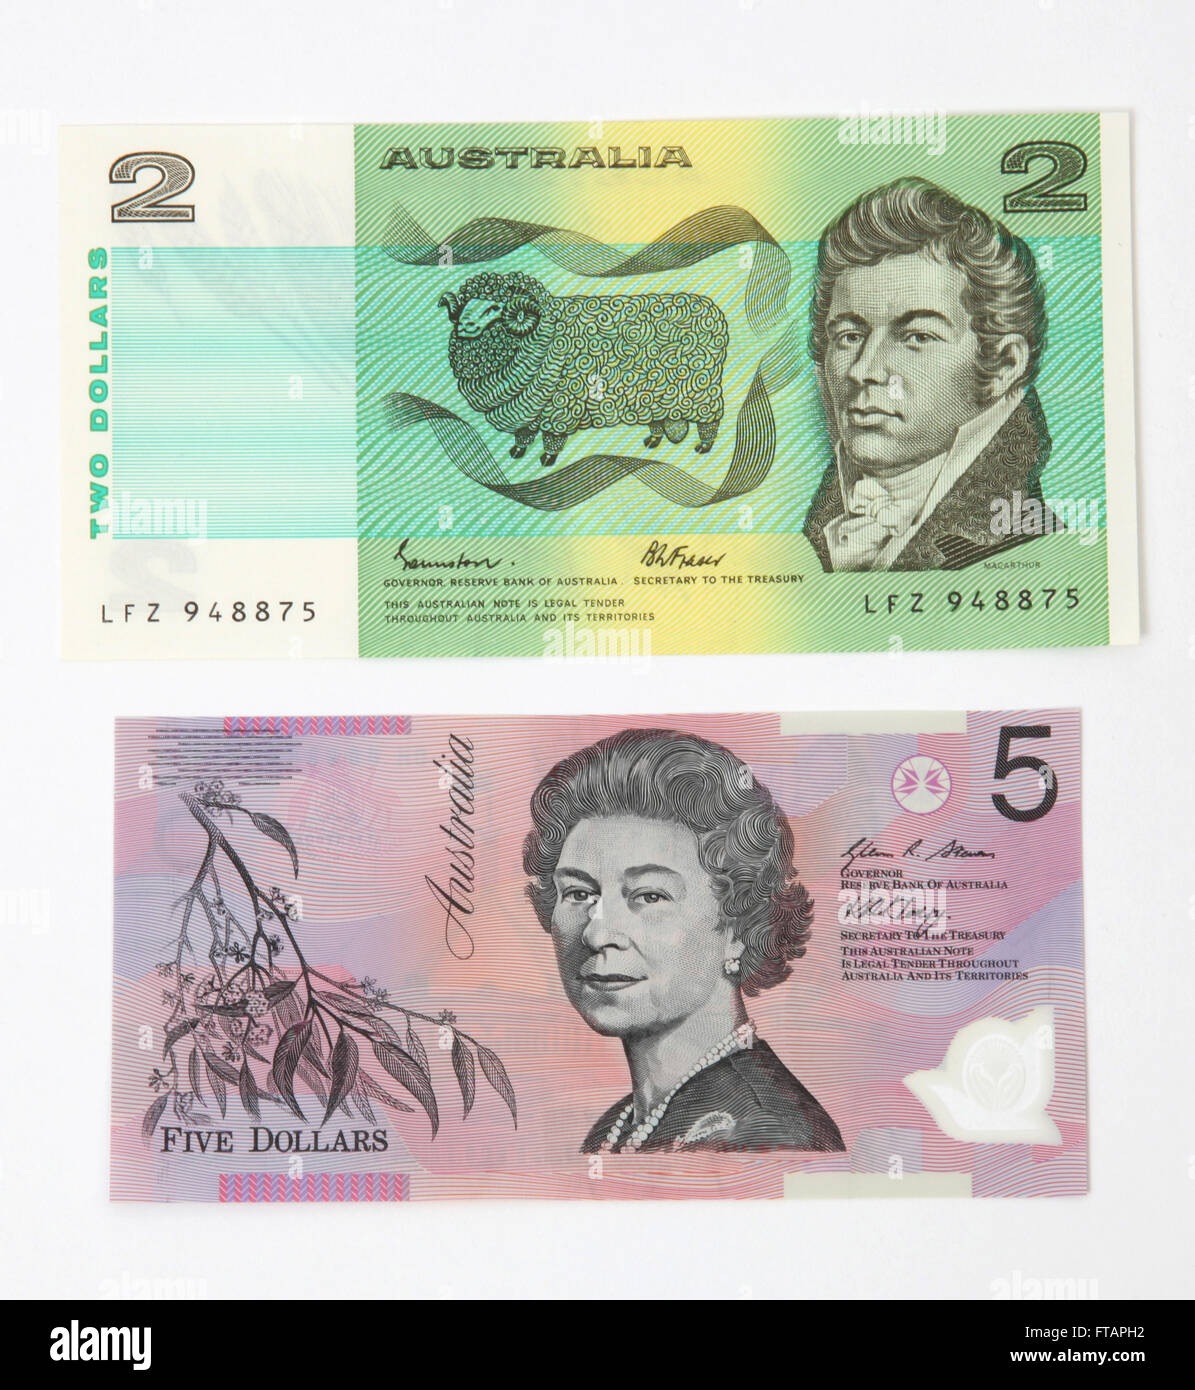 An Australian two dollar bank note and a five dollar bank note. - Stock Image